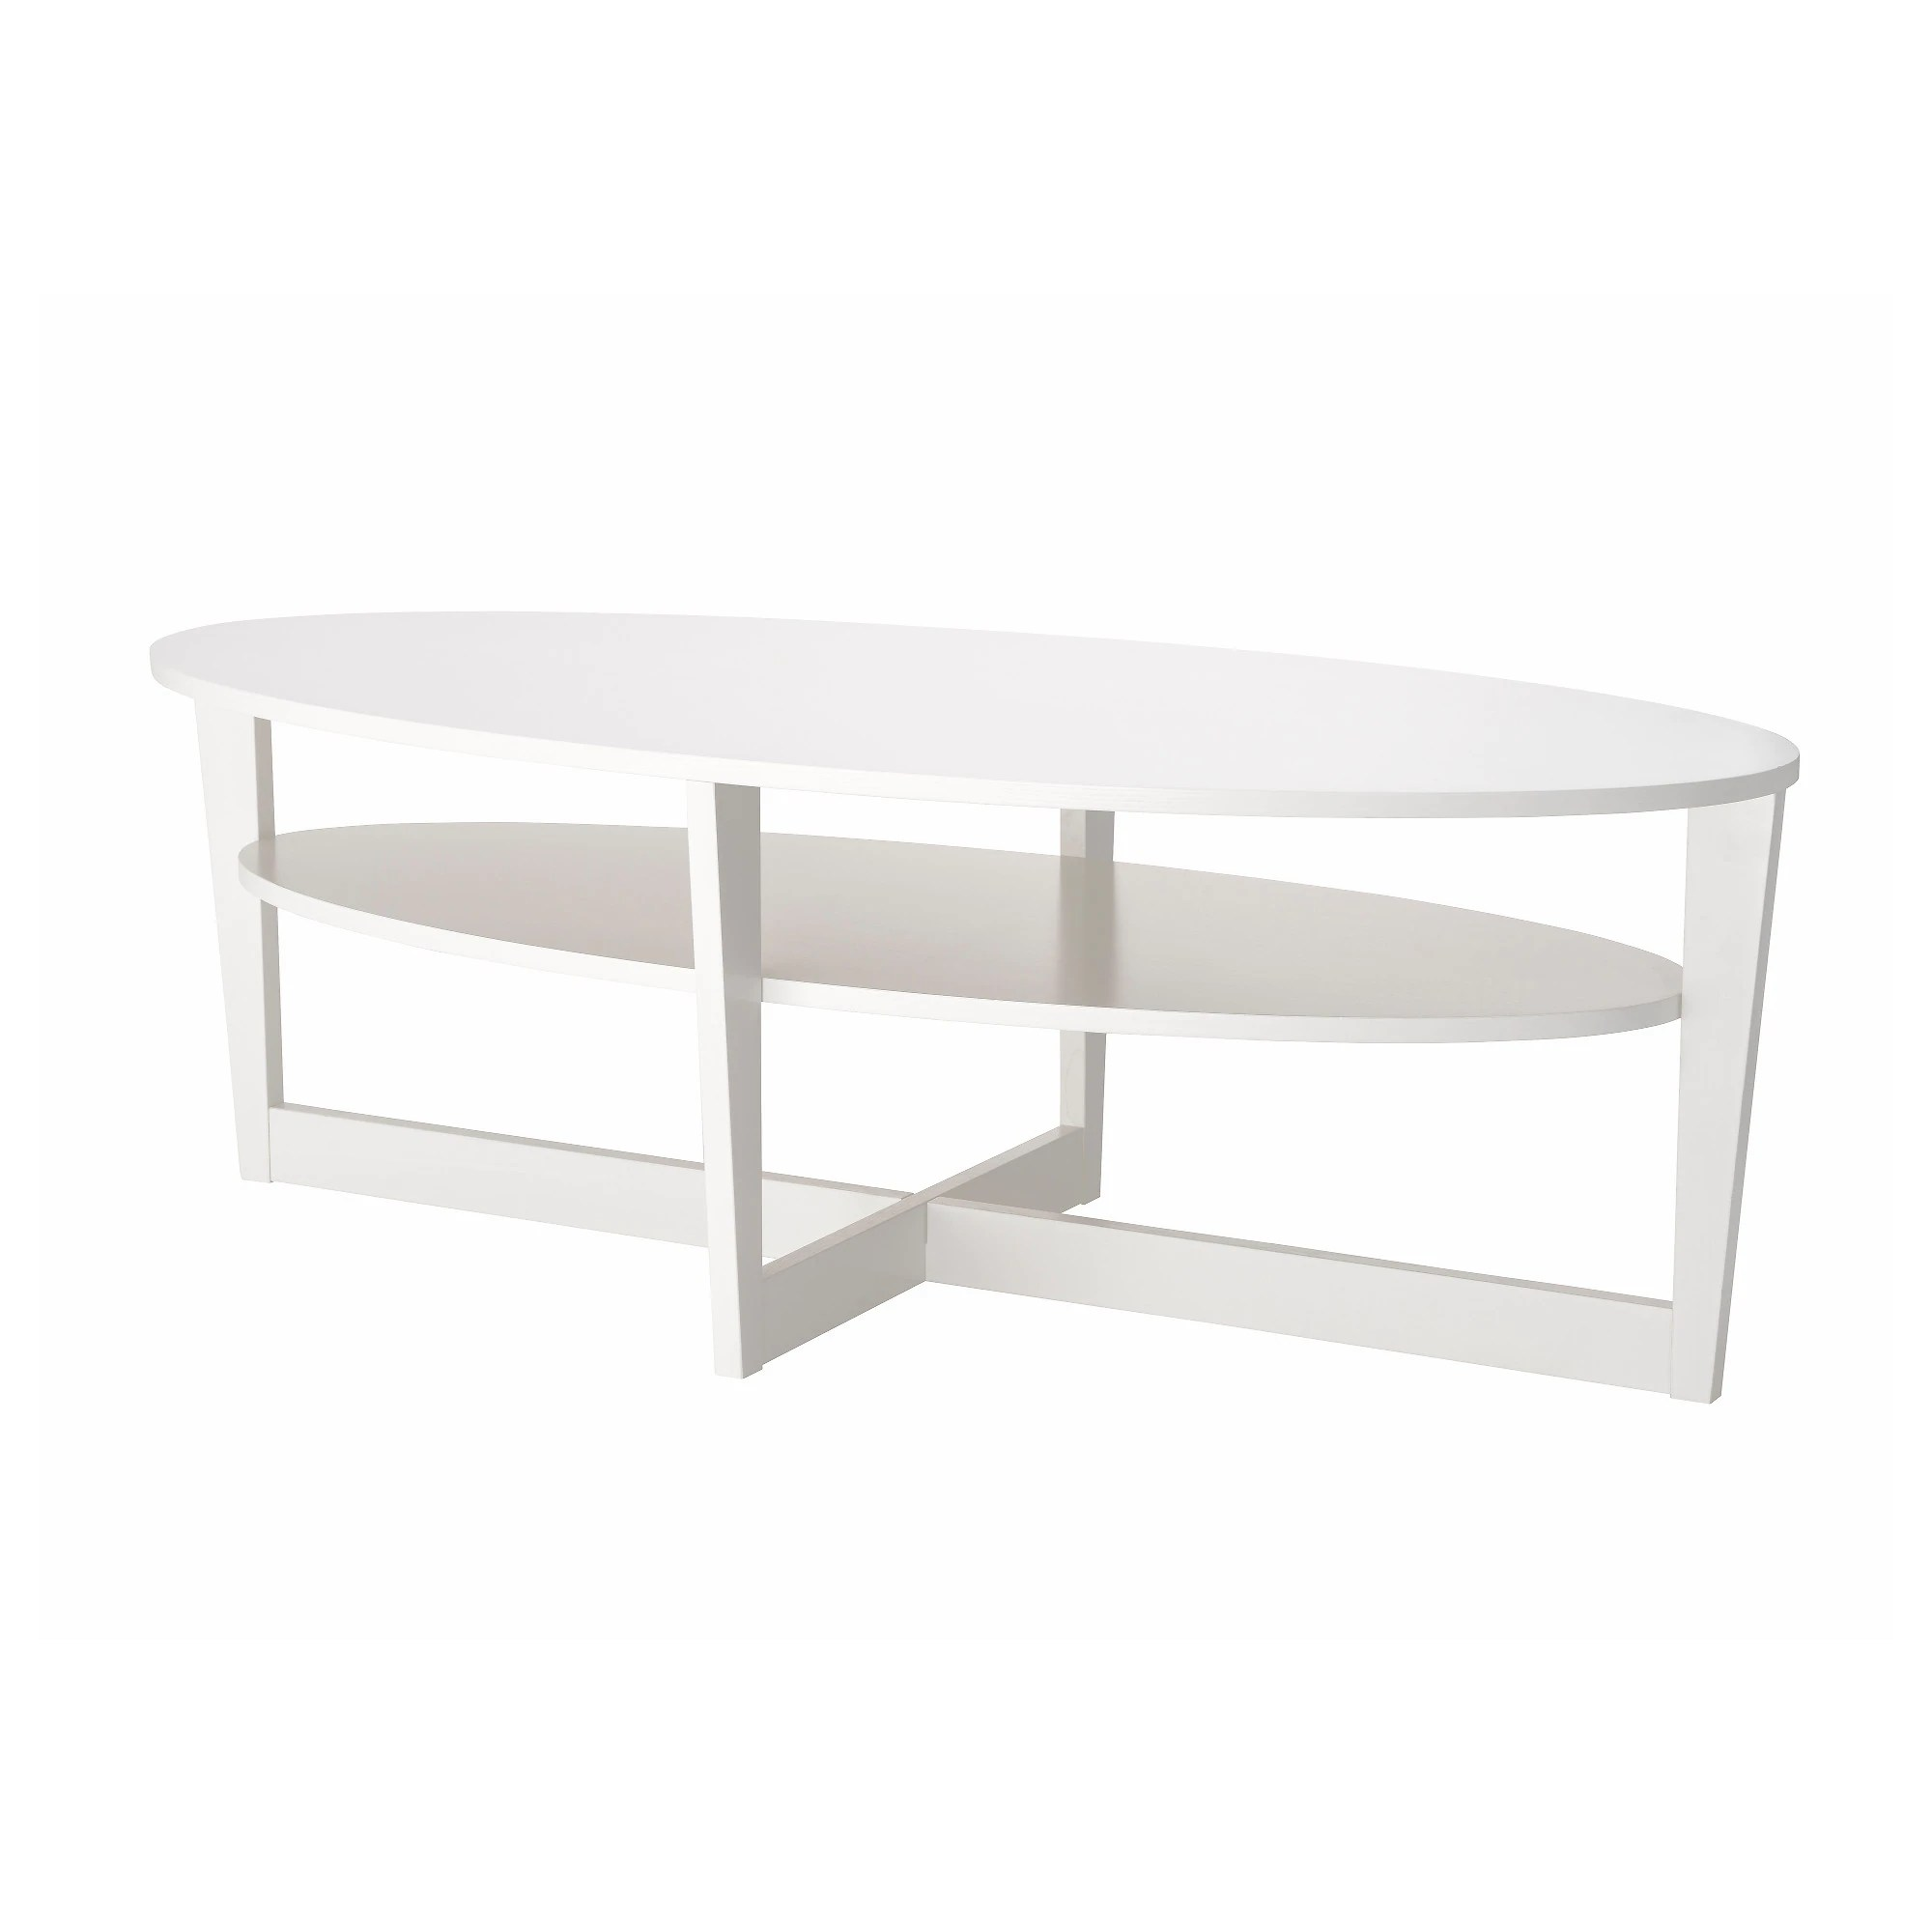 Ikea Klubbo Couchtisch Ikea Oval Table Home Interior Blog